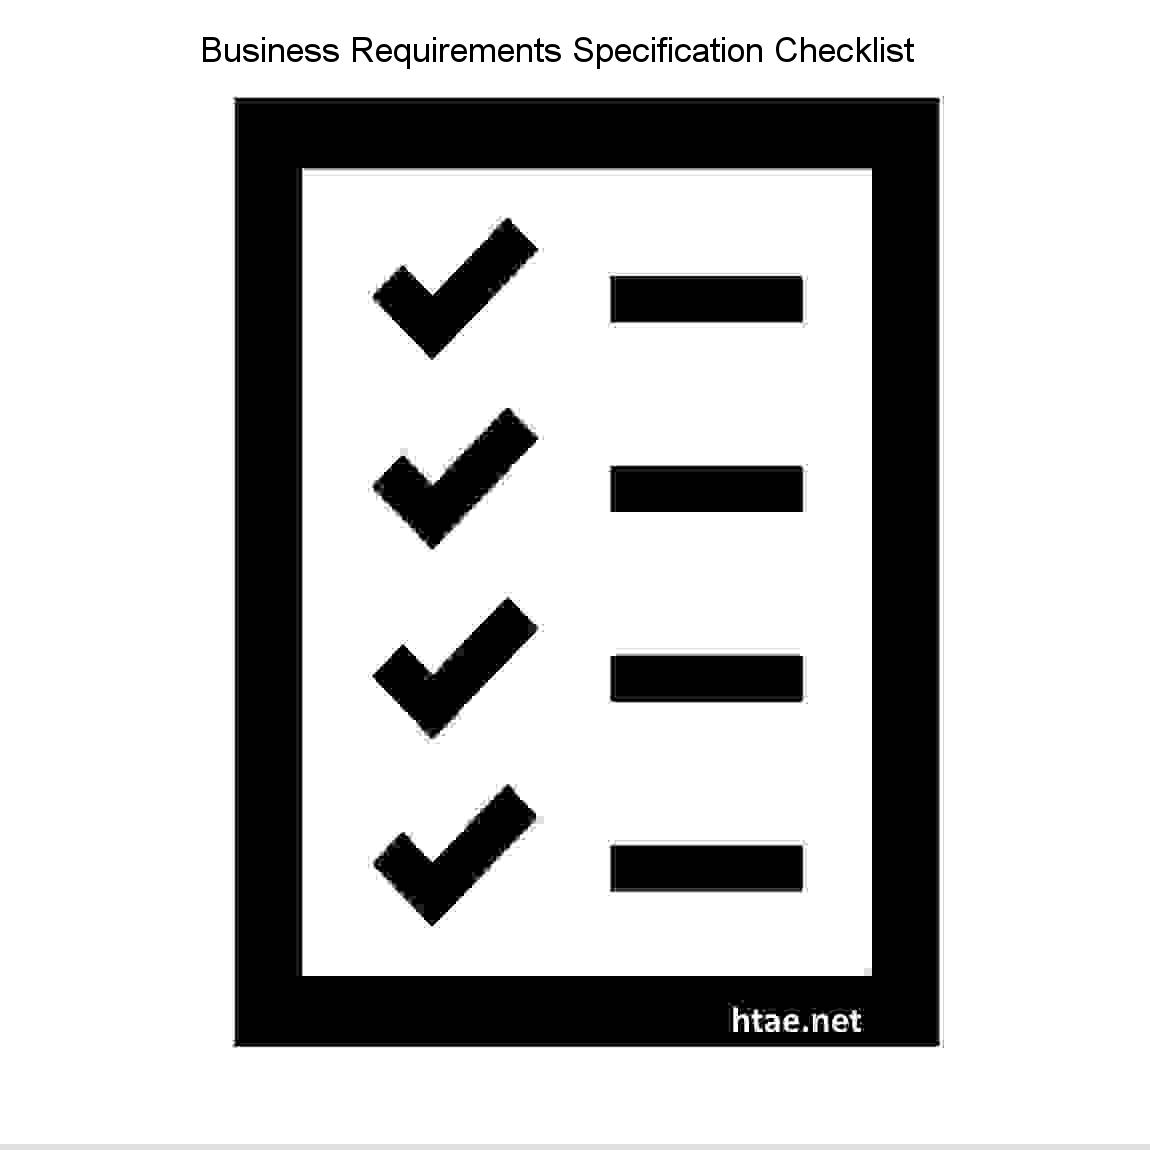 Business Requirements Specification Checklist Software Project - Business requirements software